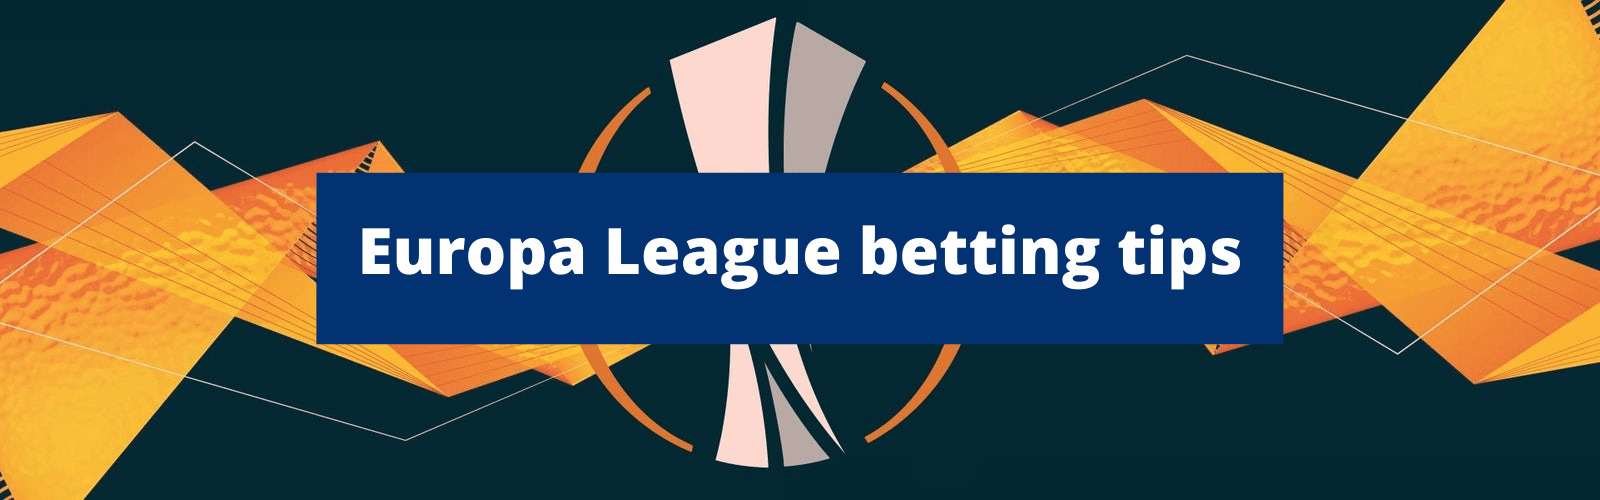 Europa League betting tips